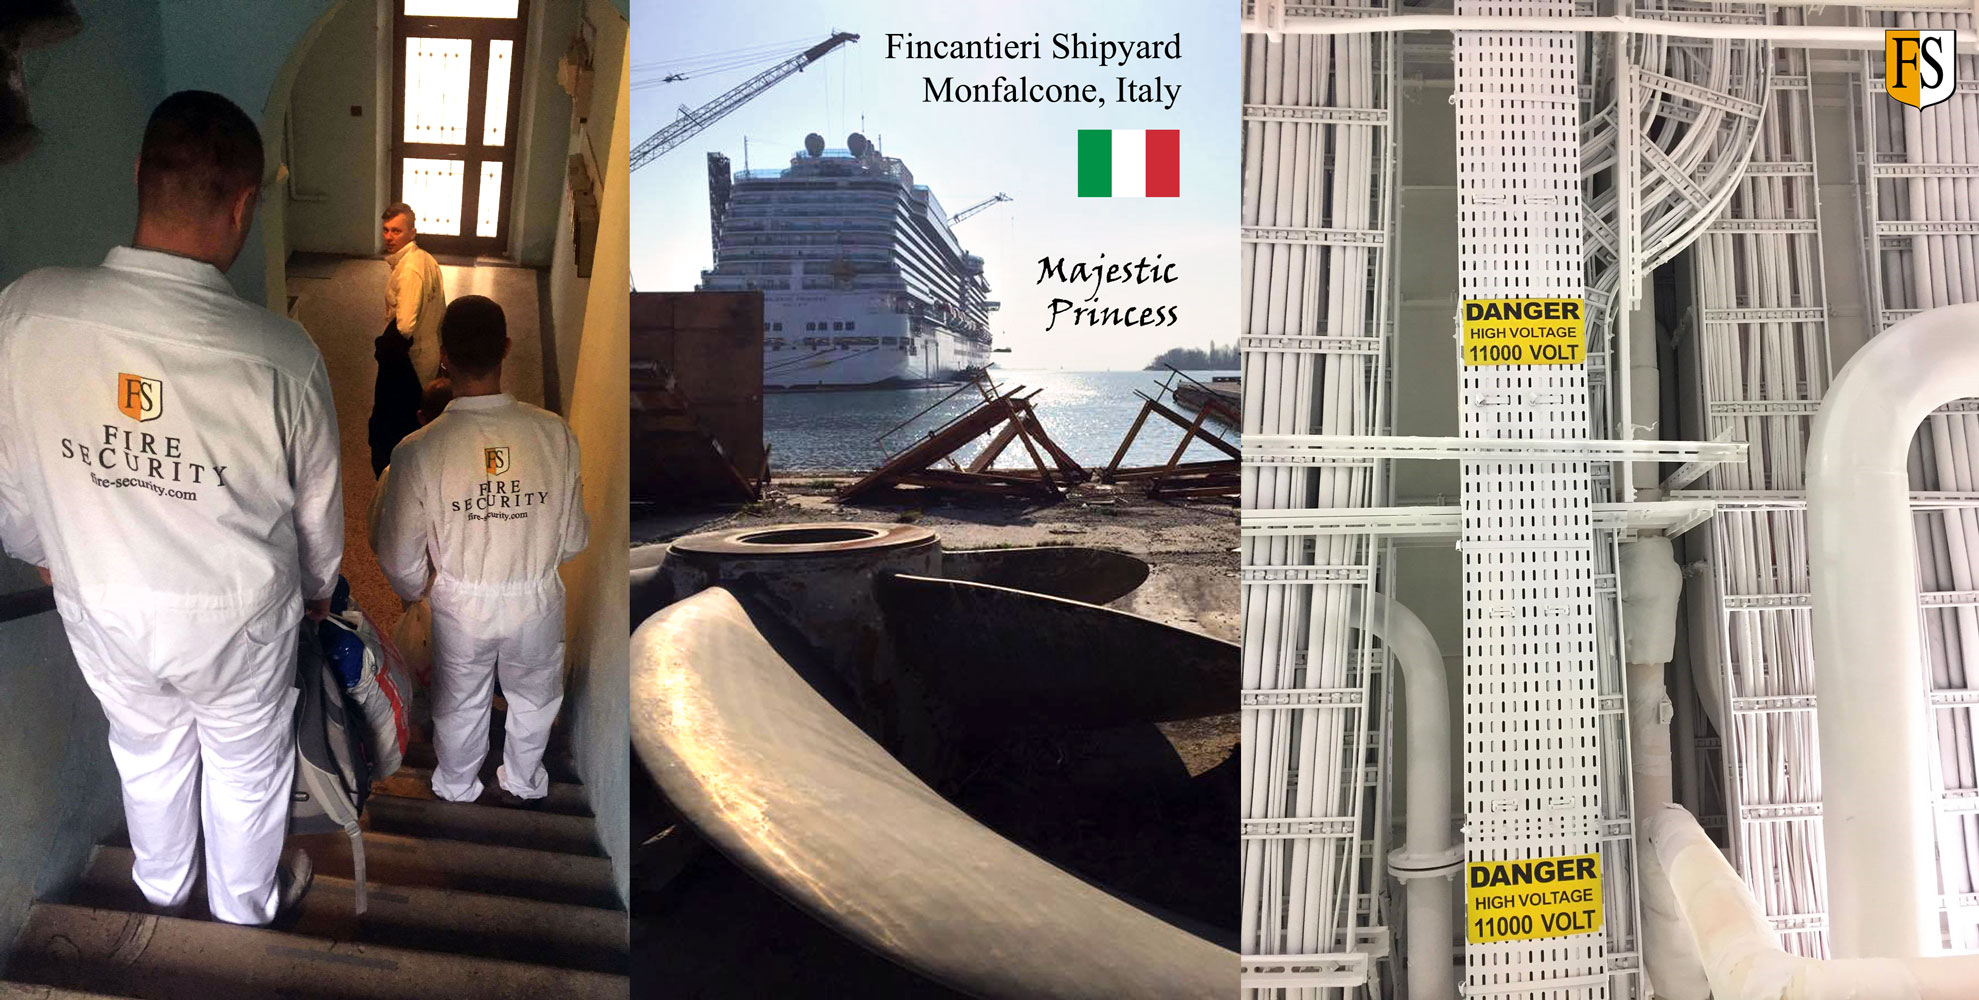 Our experienced coating crew are doing cable fire protection onboard Majestic Princess at Fincatieri Shipyard in Italy